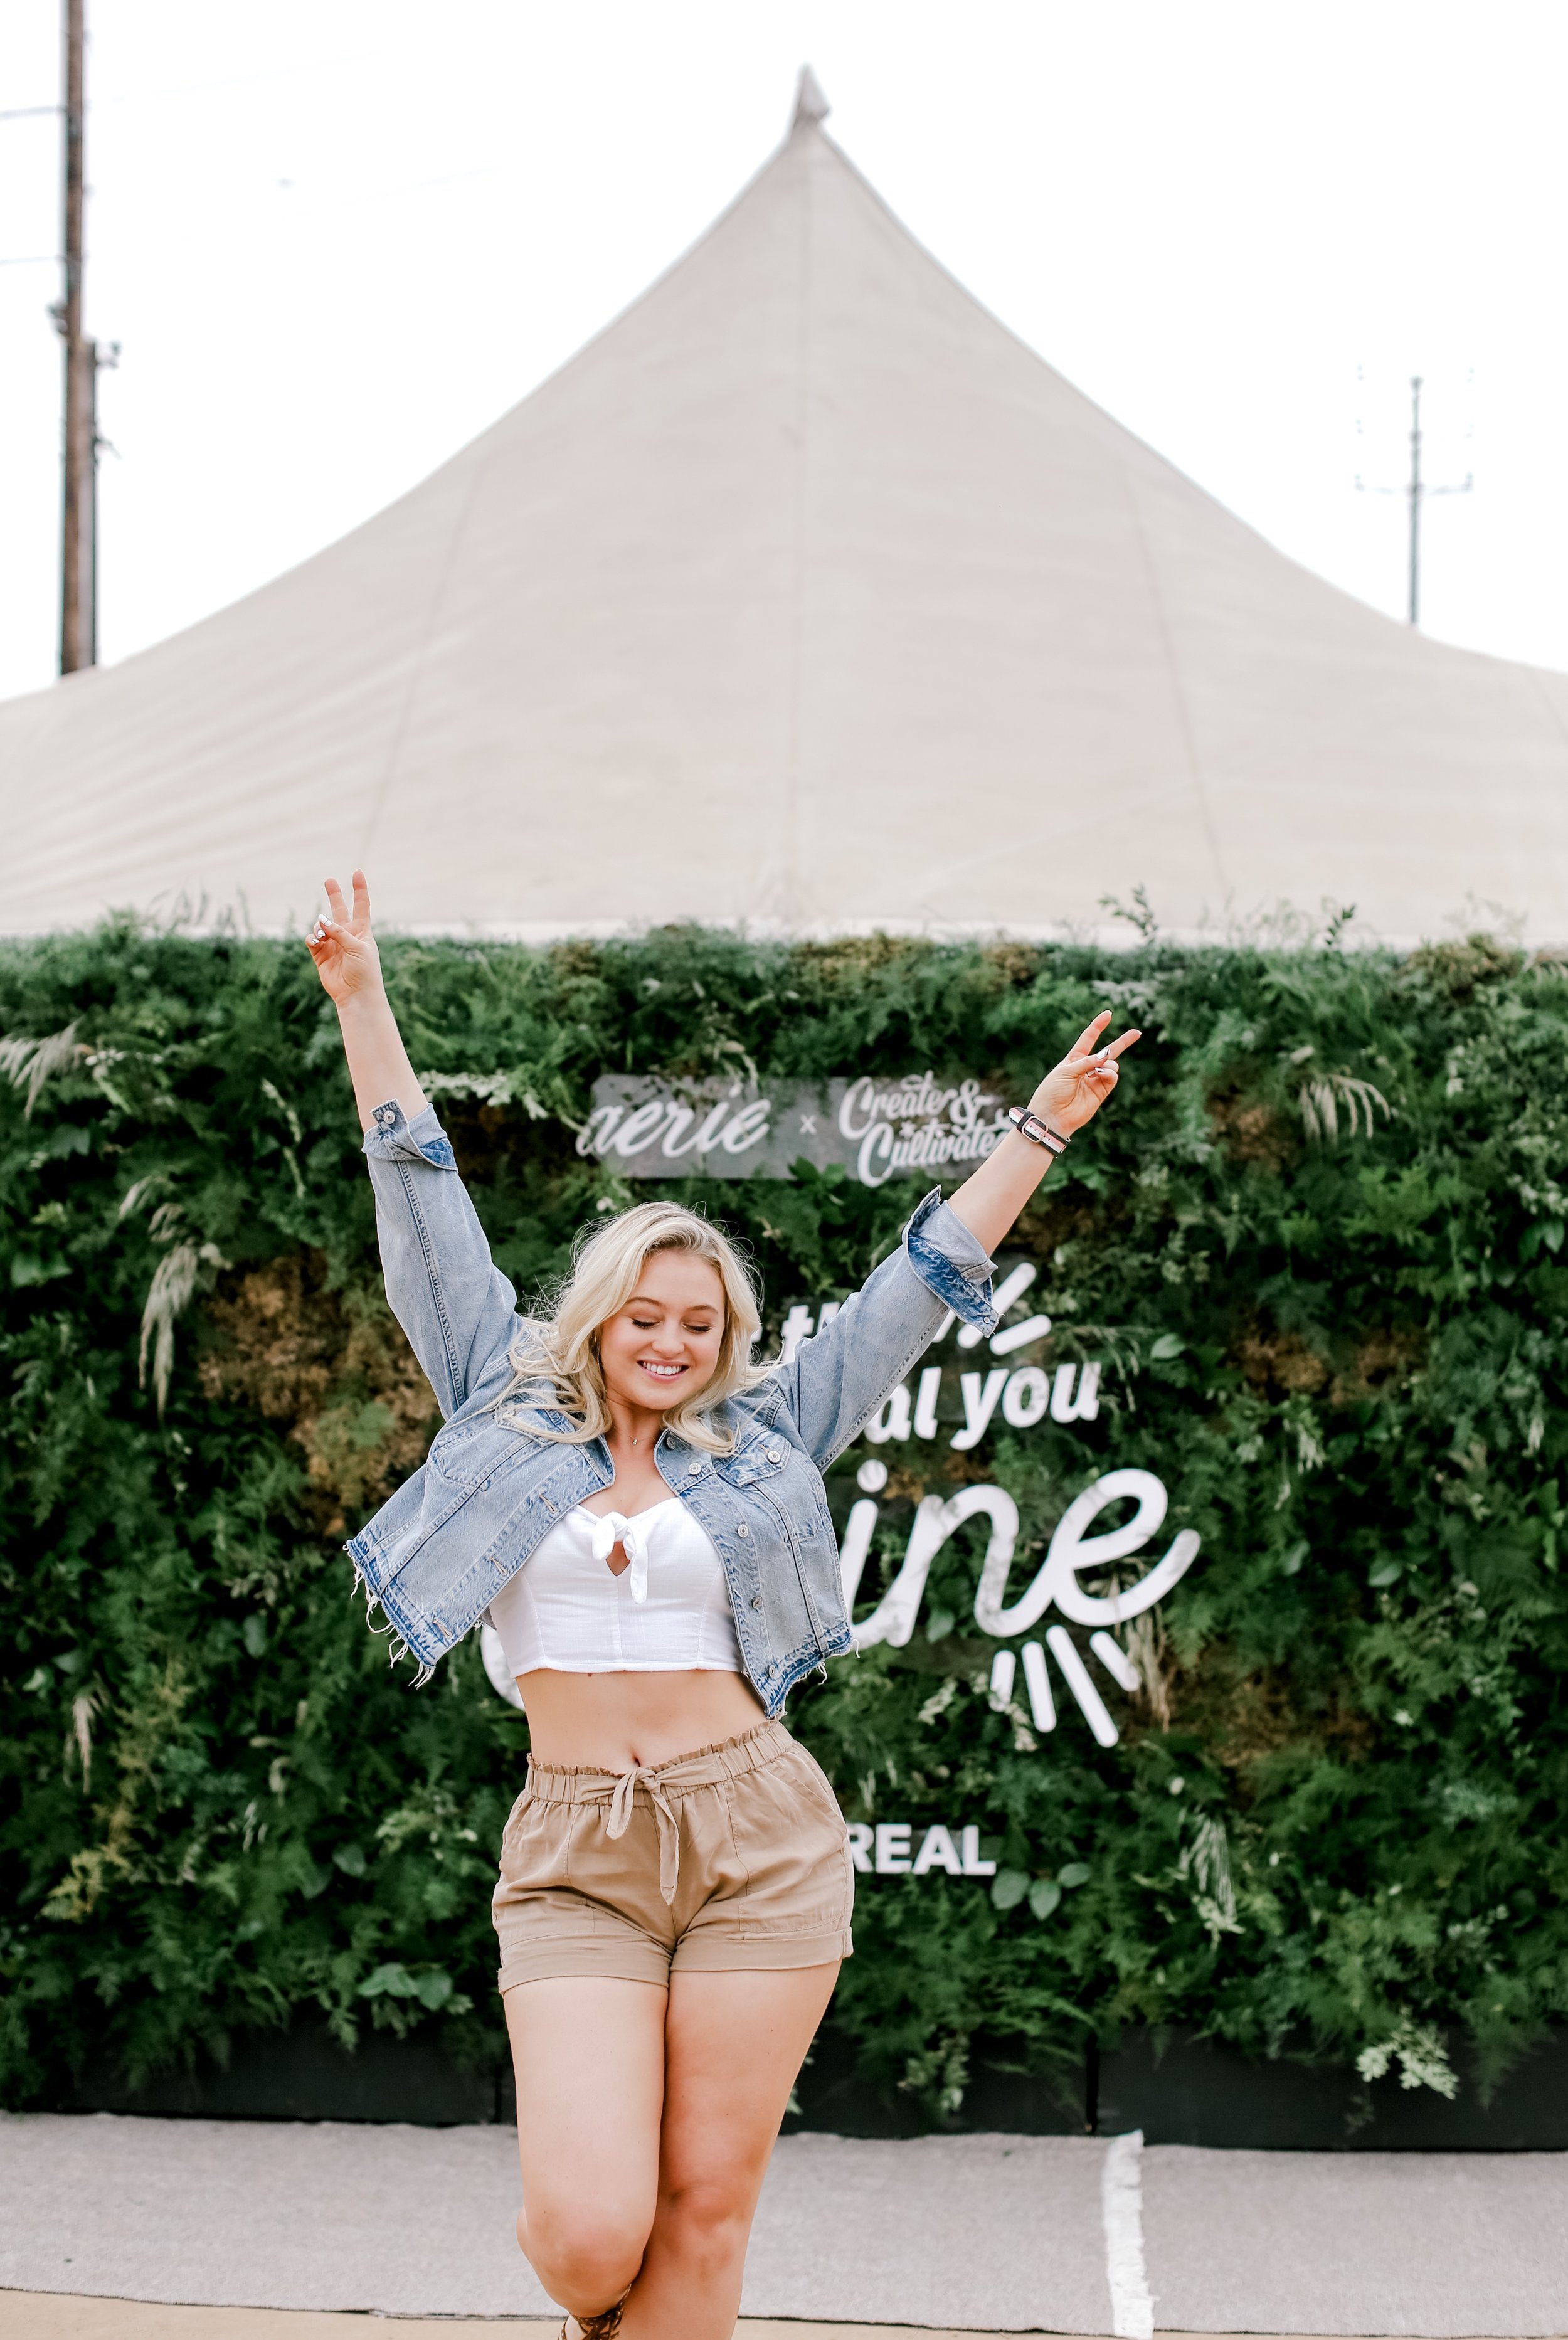 Iskra Lawrence opens the first #AerieREALtreat in Los Angeles.